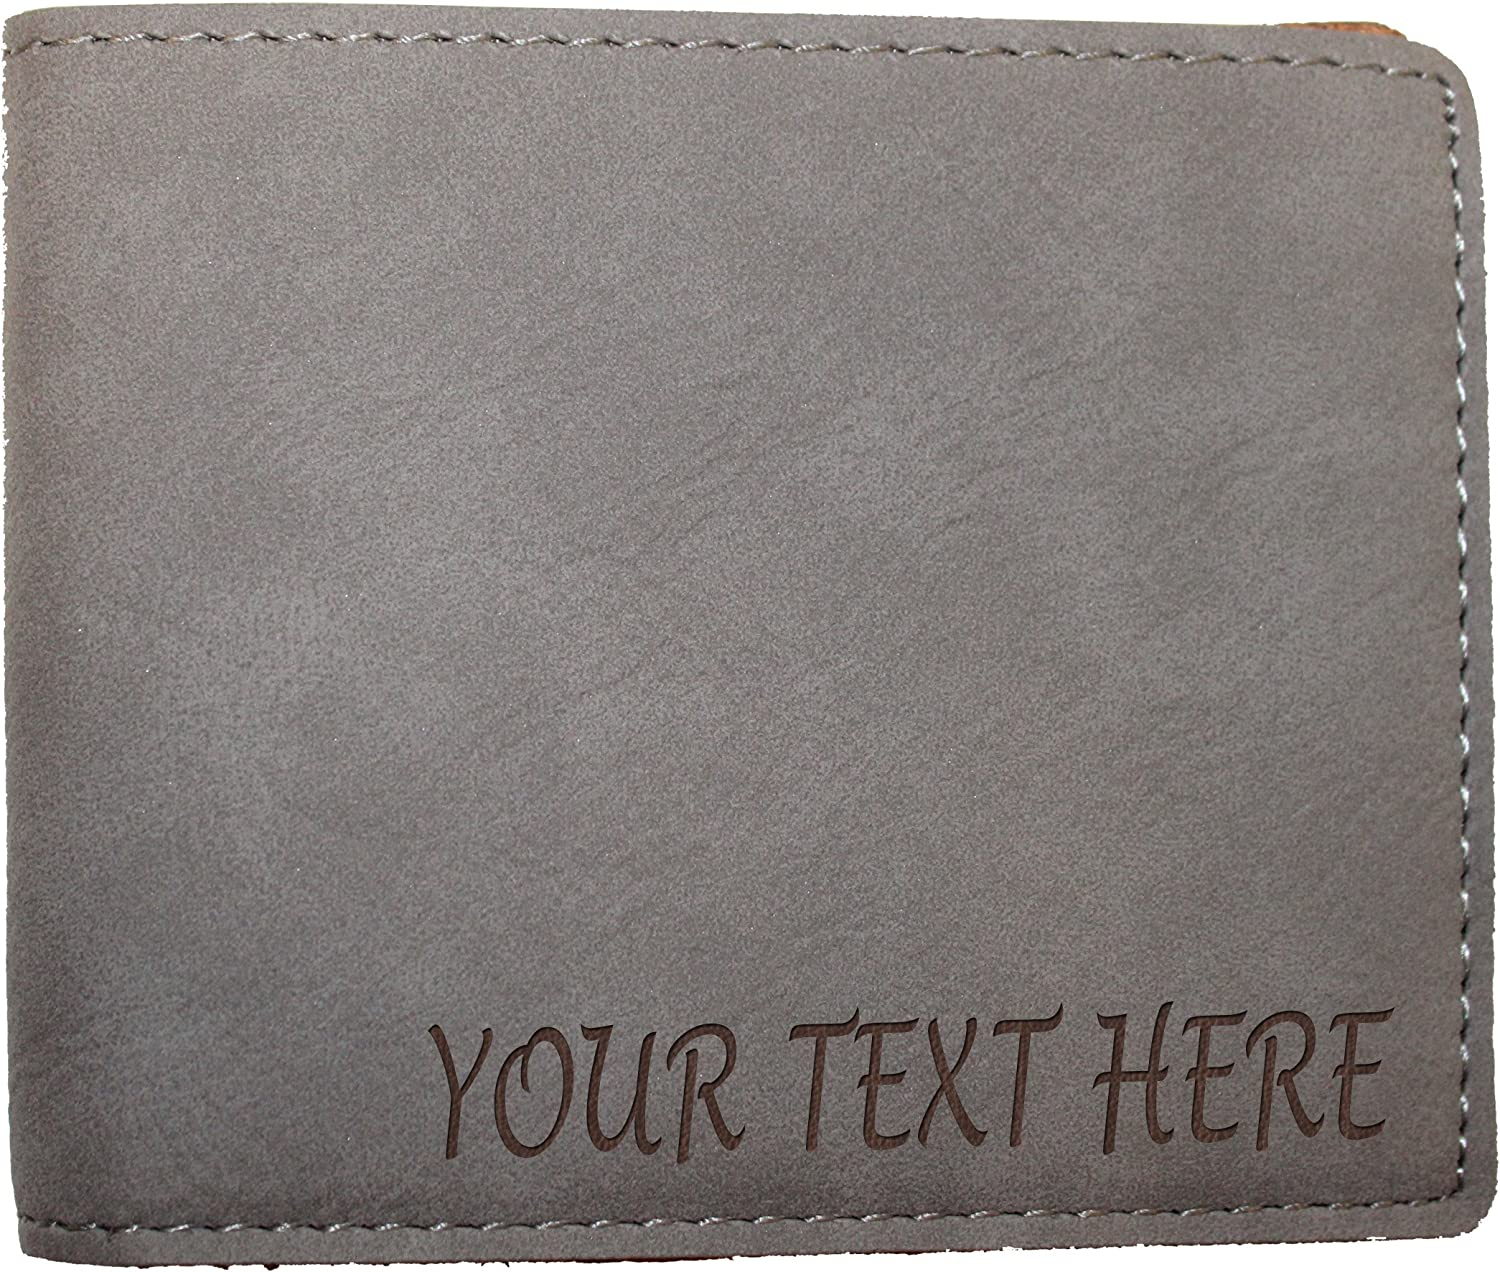 Personalized Engraving Included Faux Leather Bi-Fold Wallet Urology